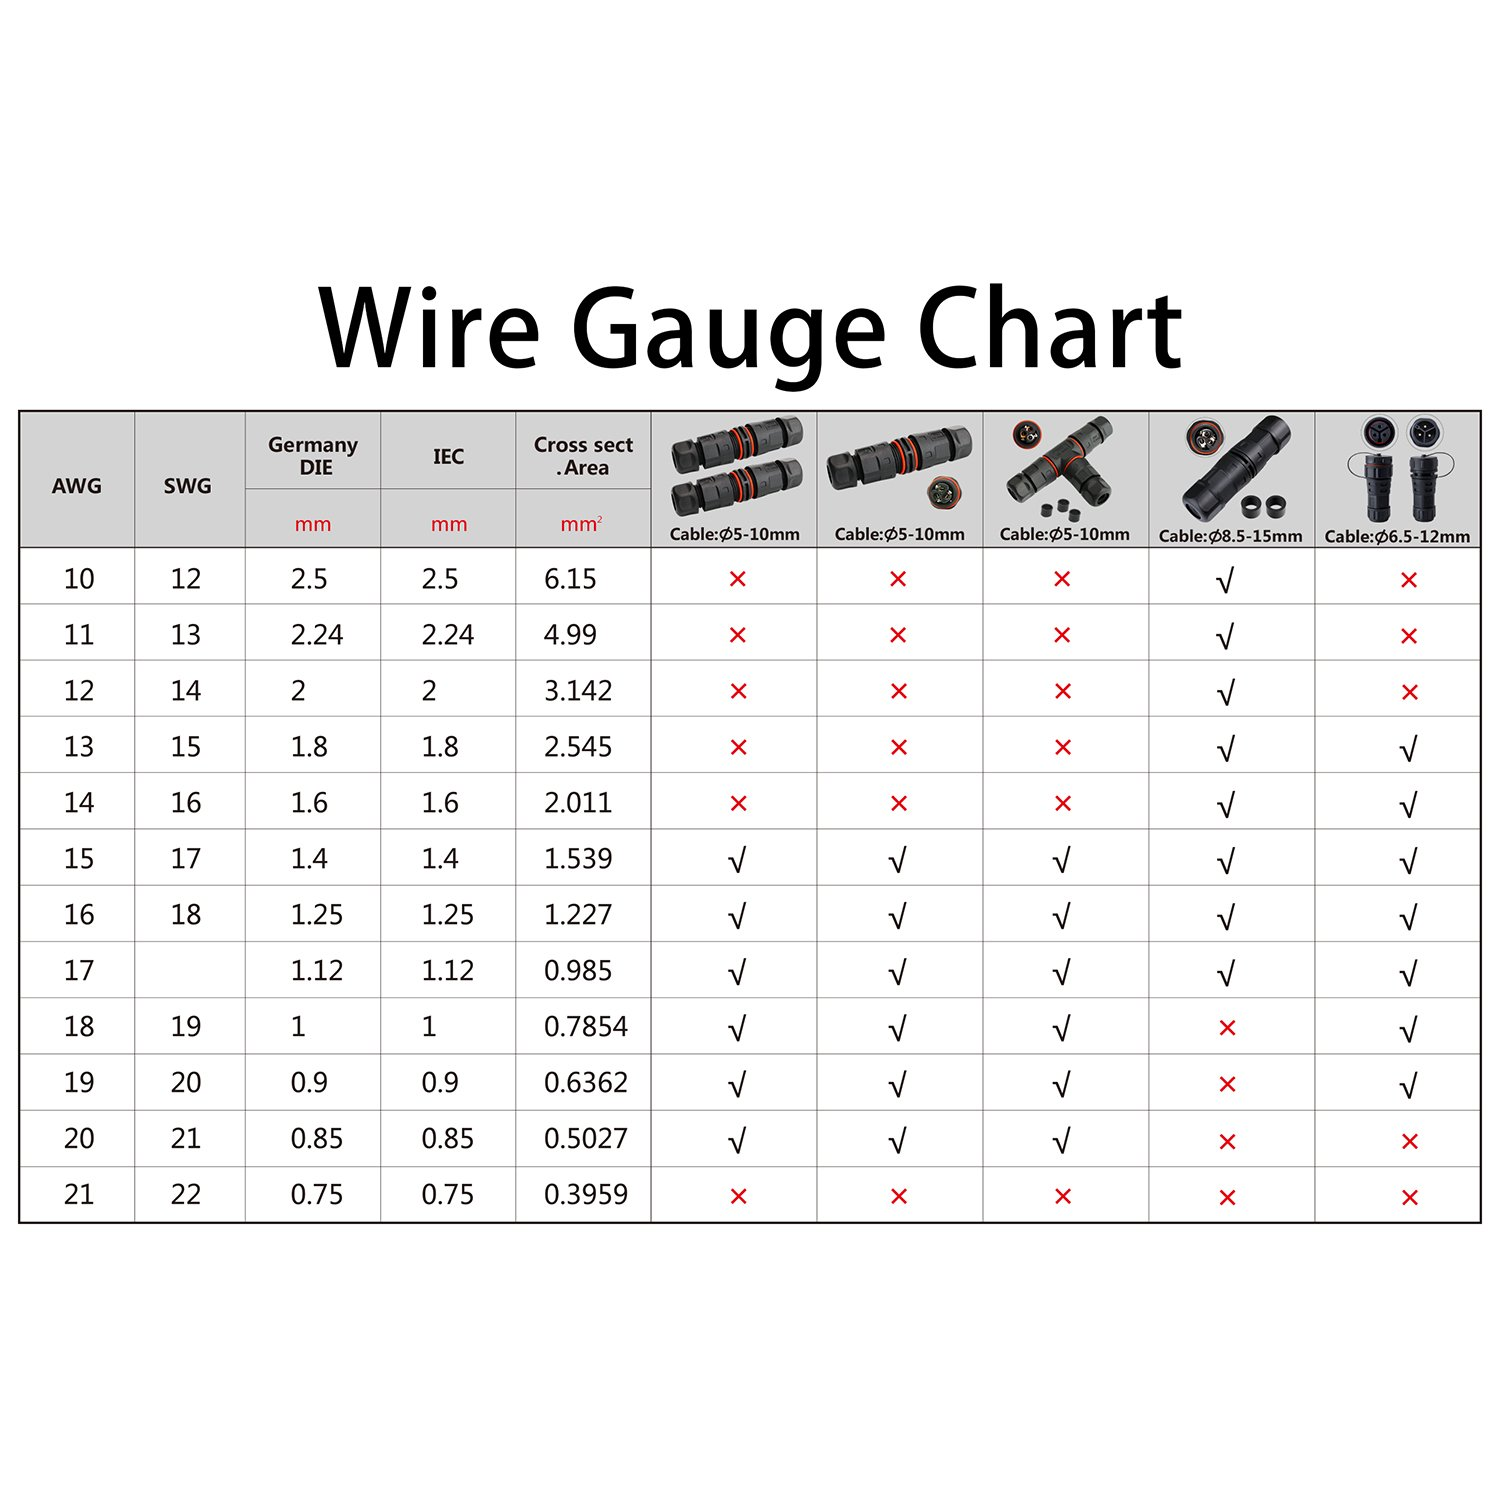 Fine wire gauge diameter chart gallery wiring diagram ideas awesome wire gauge chart mm photos wiring diagram ideas blogitia keyboard keysfo Image collections